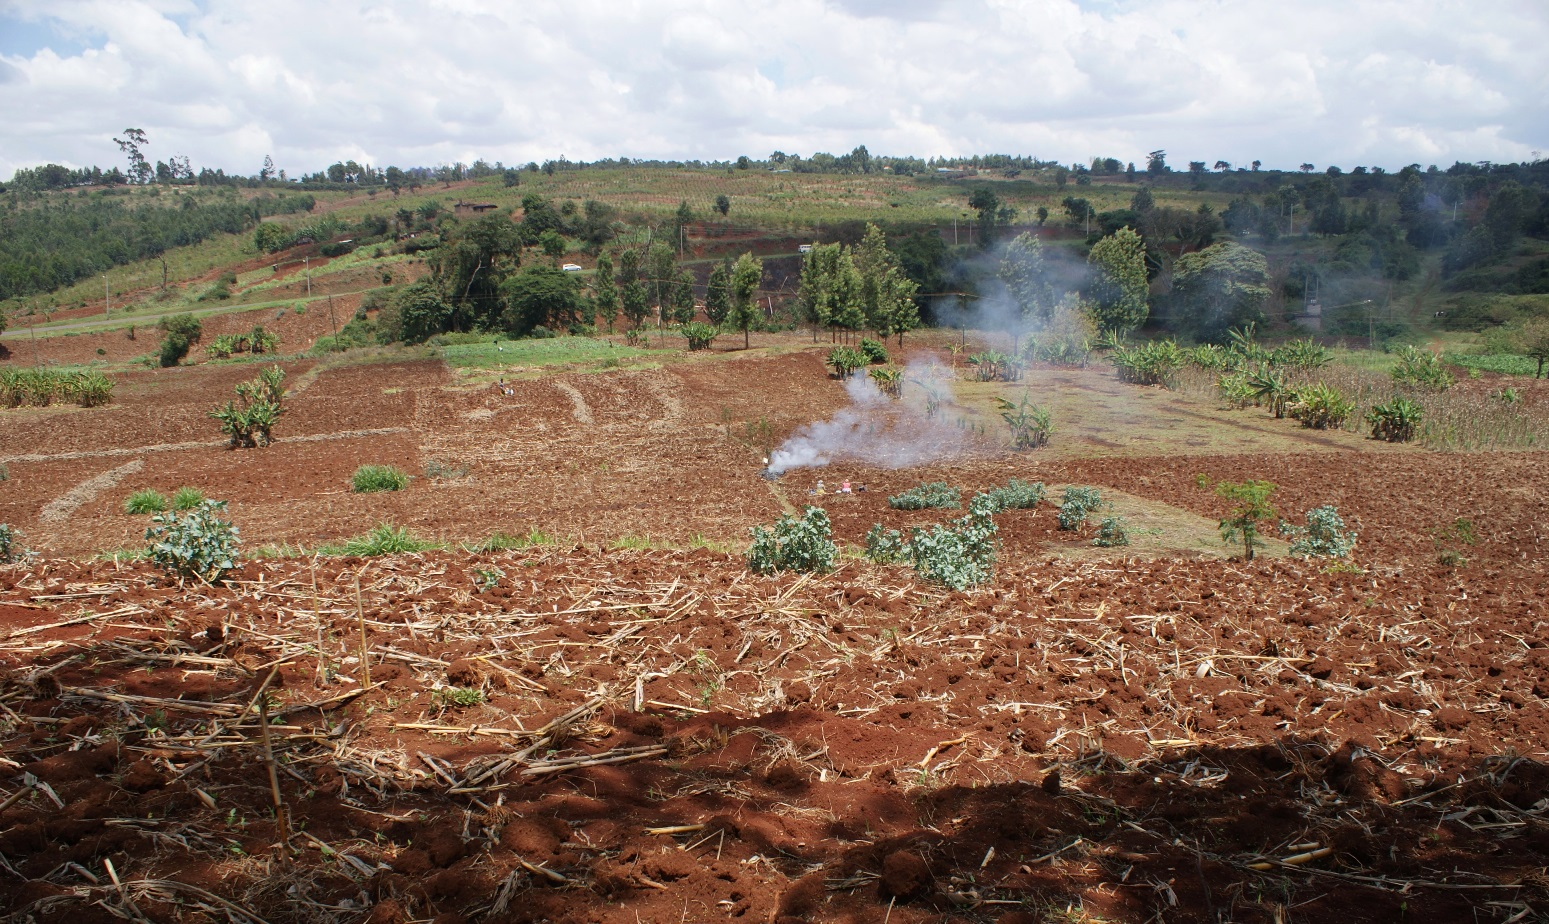 Farmers burning farm waste in preparation of the planting season in central Kenya. When left unchecked such fires can spread into forests and raze acres of the natural ecosystem.